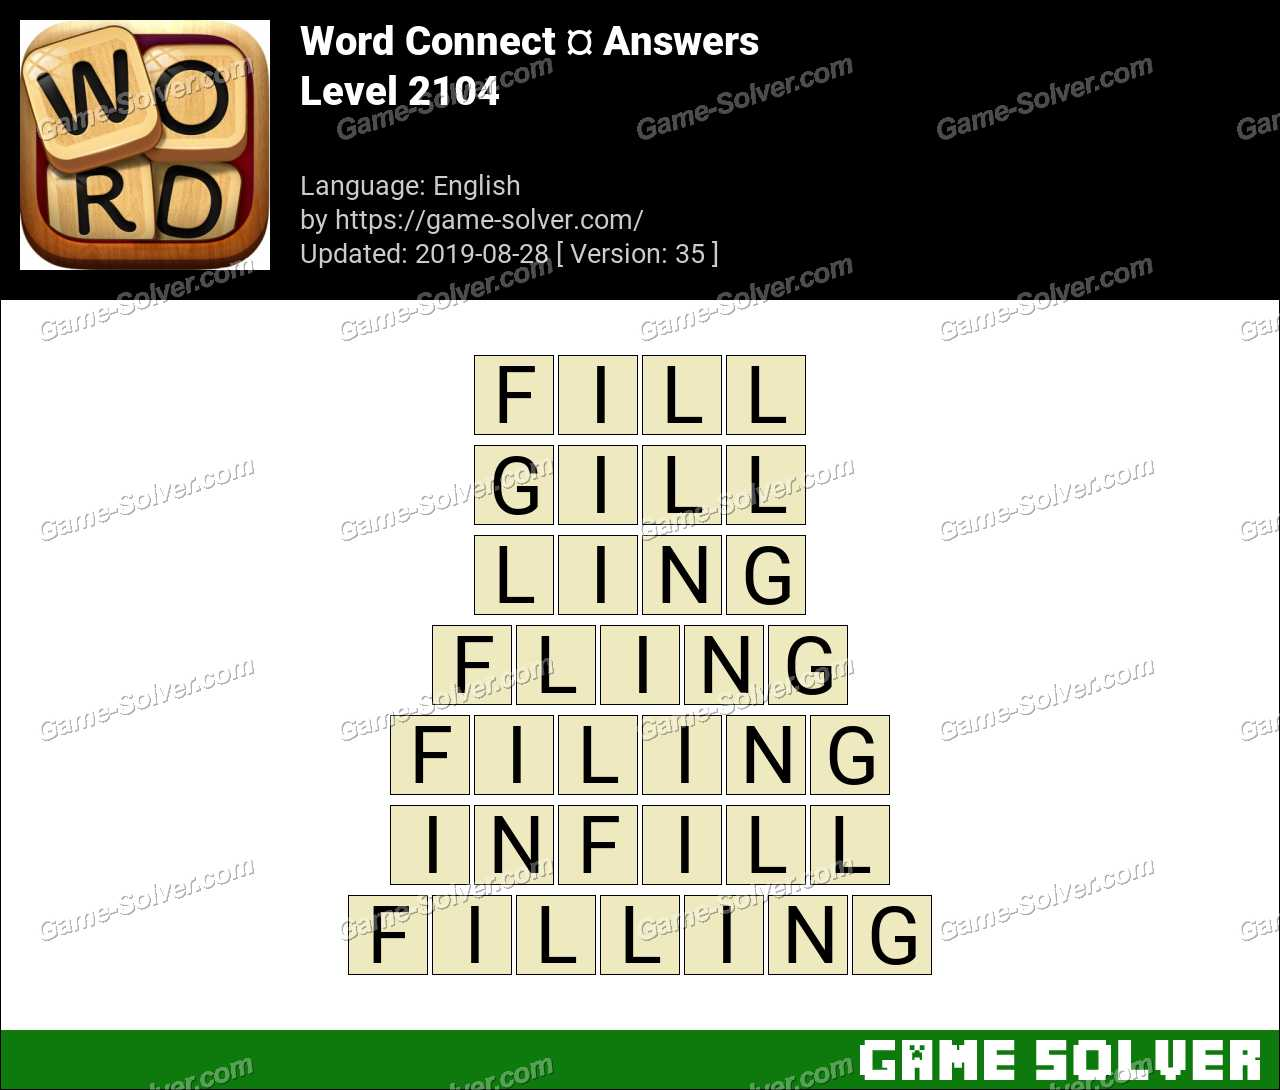 Word Connect Level 2104 Answers